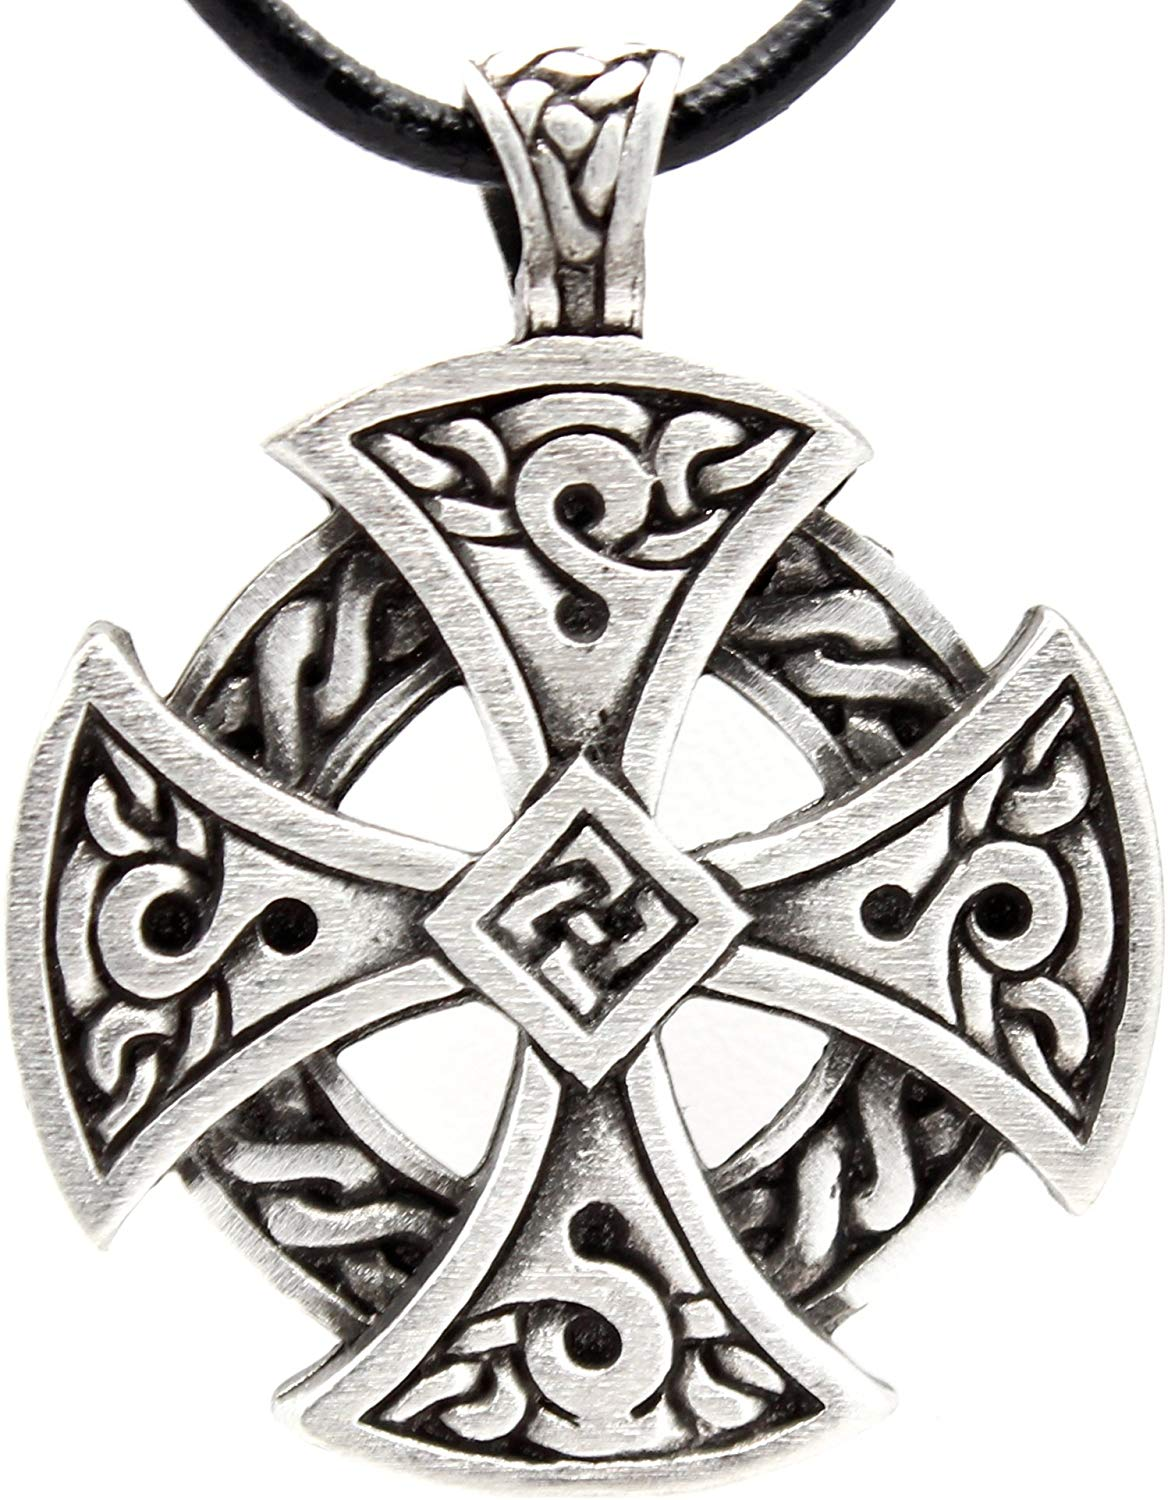 Solar Cross Necklace - SolomonsOrder